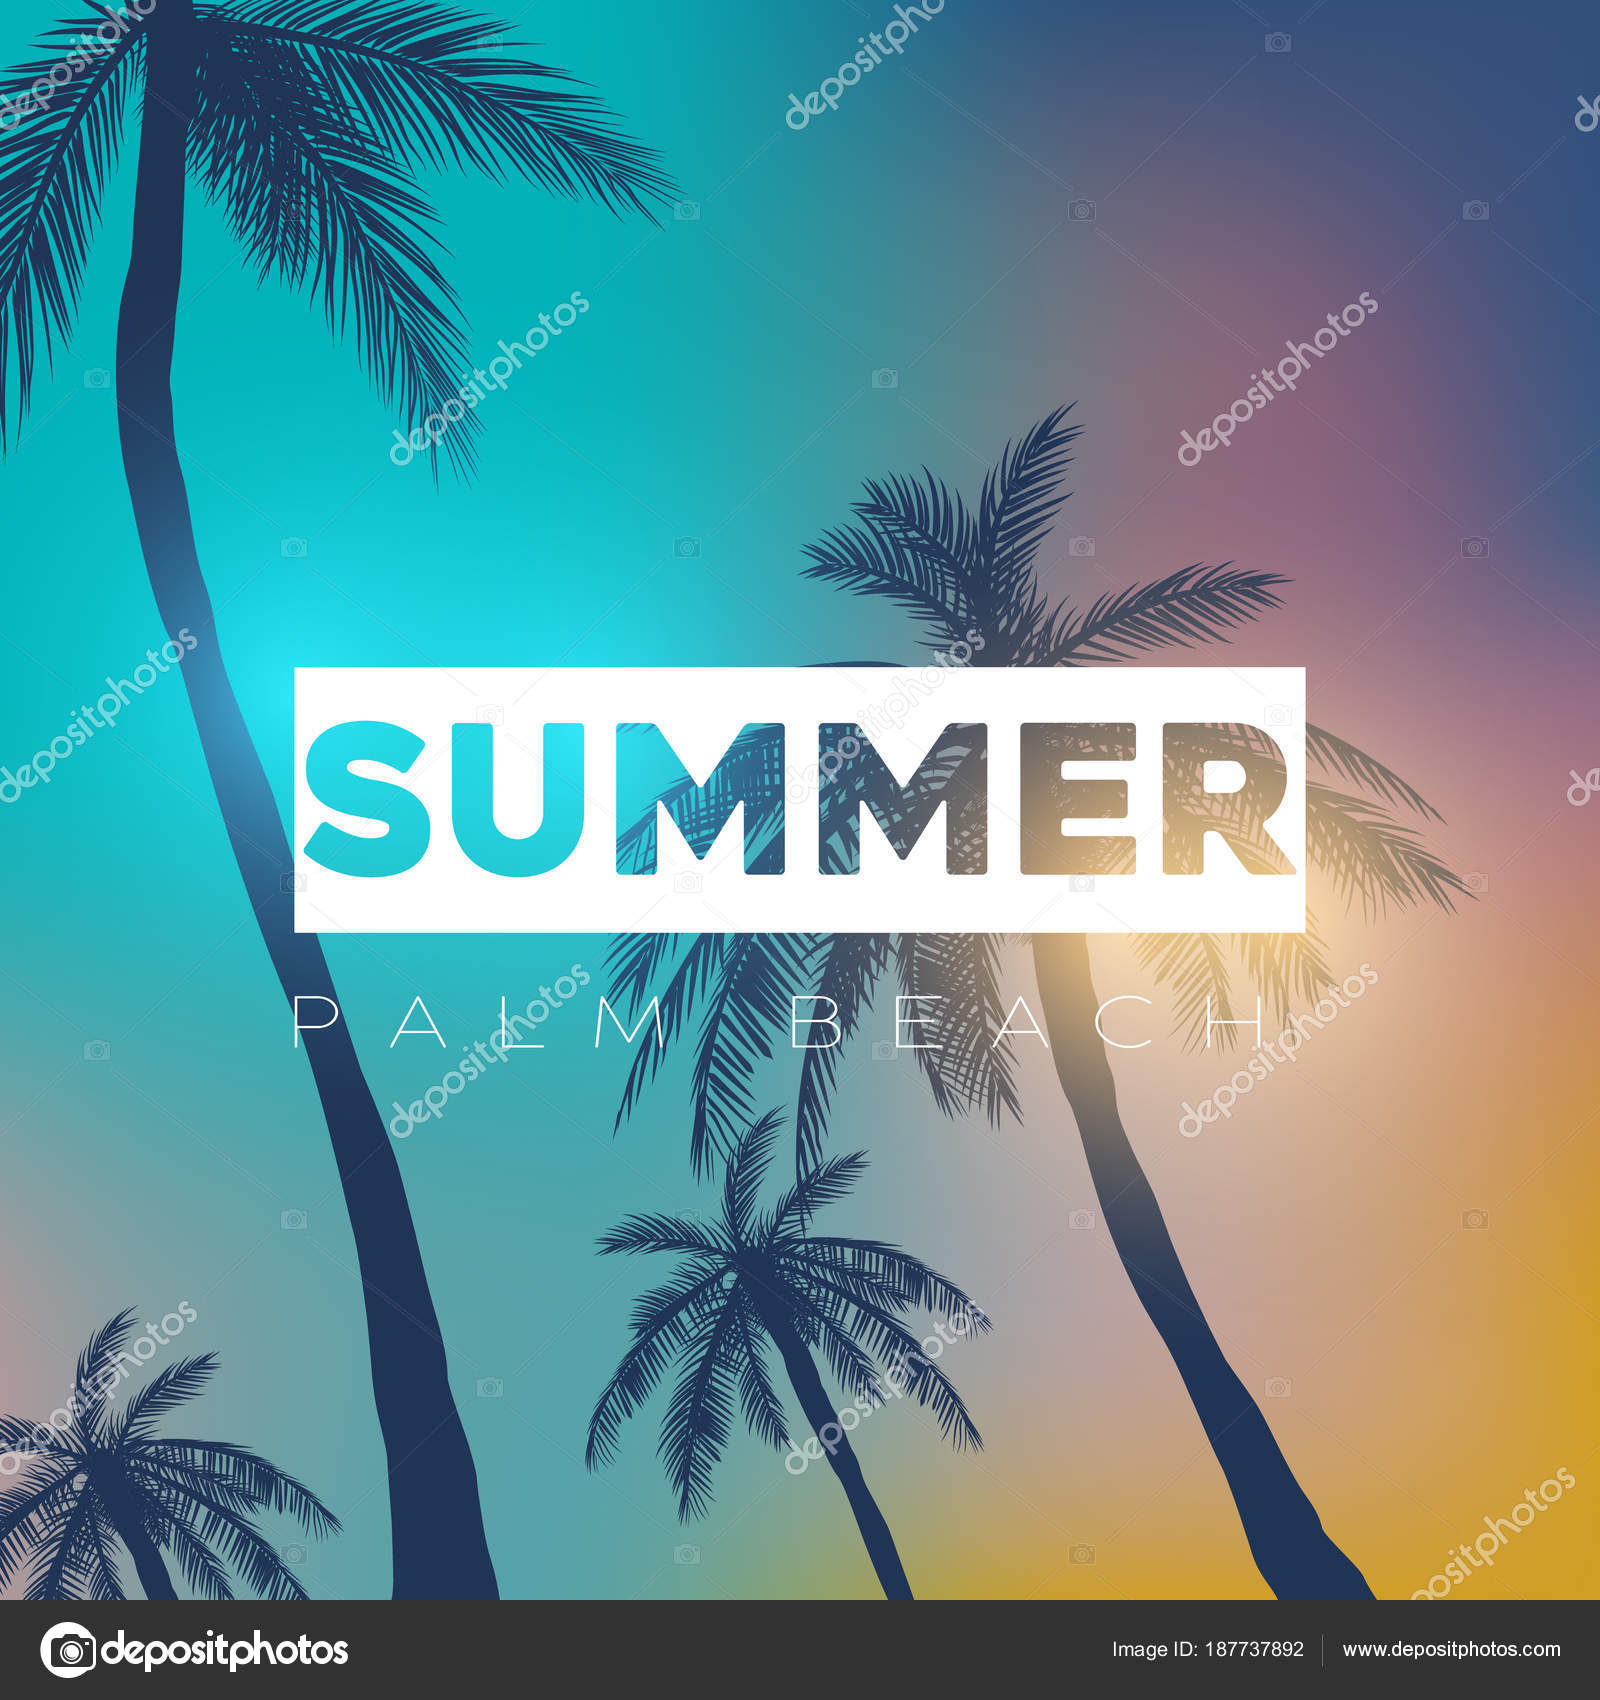 Summer California Tumblr Backgrounds Set Palms Sky Sunset Placard Stock Vector